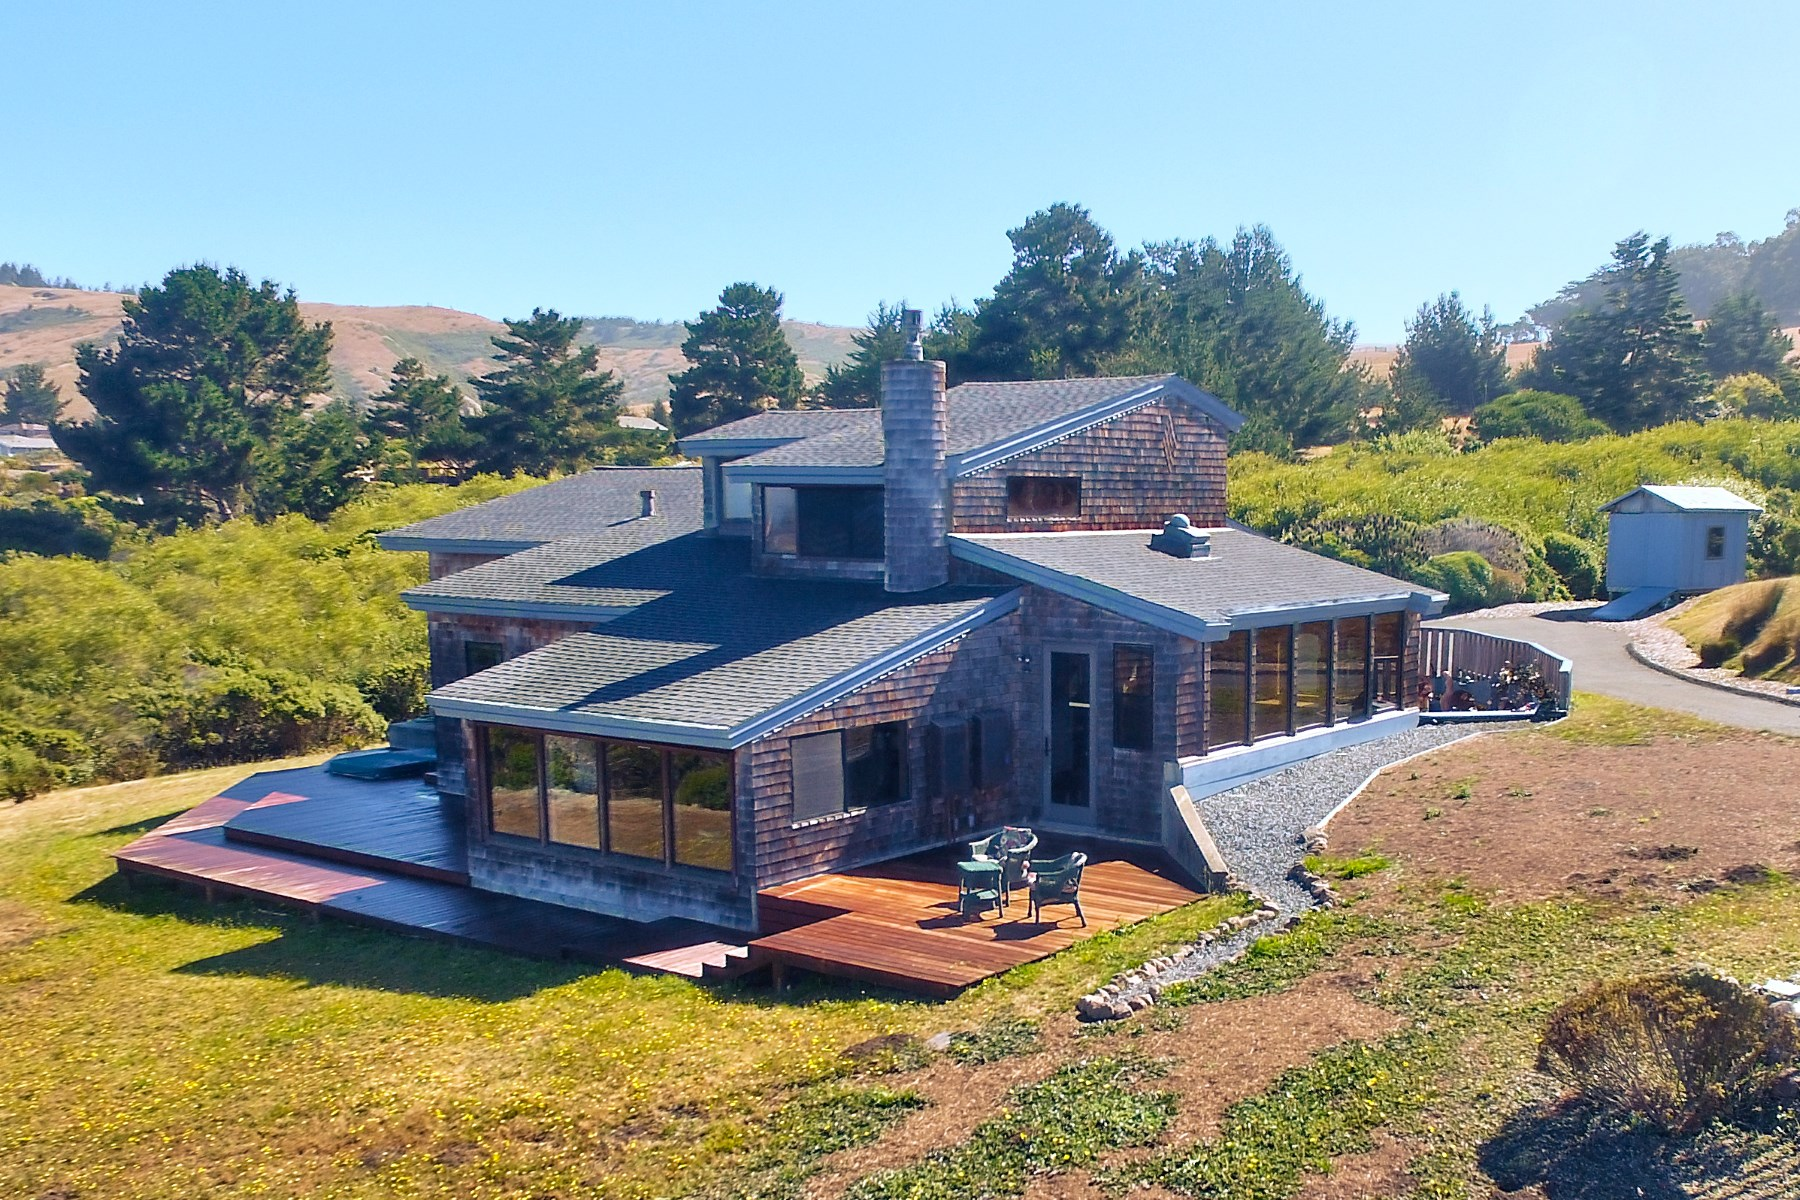 Single Family Home for Sale at Coveted Sonoma Coast Hideaway 411 Los Santos Dr Bodega Bay, California 94923 United States